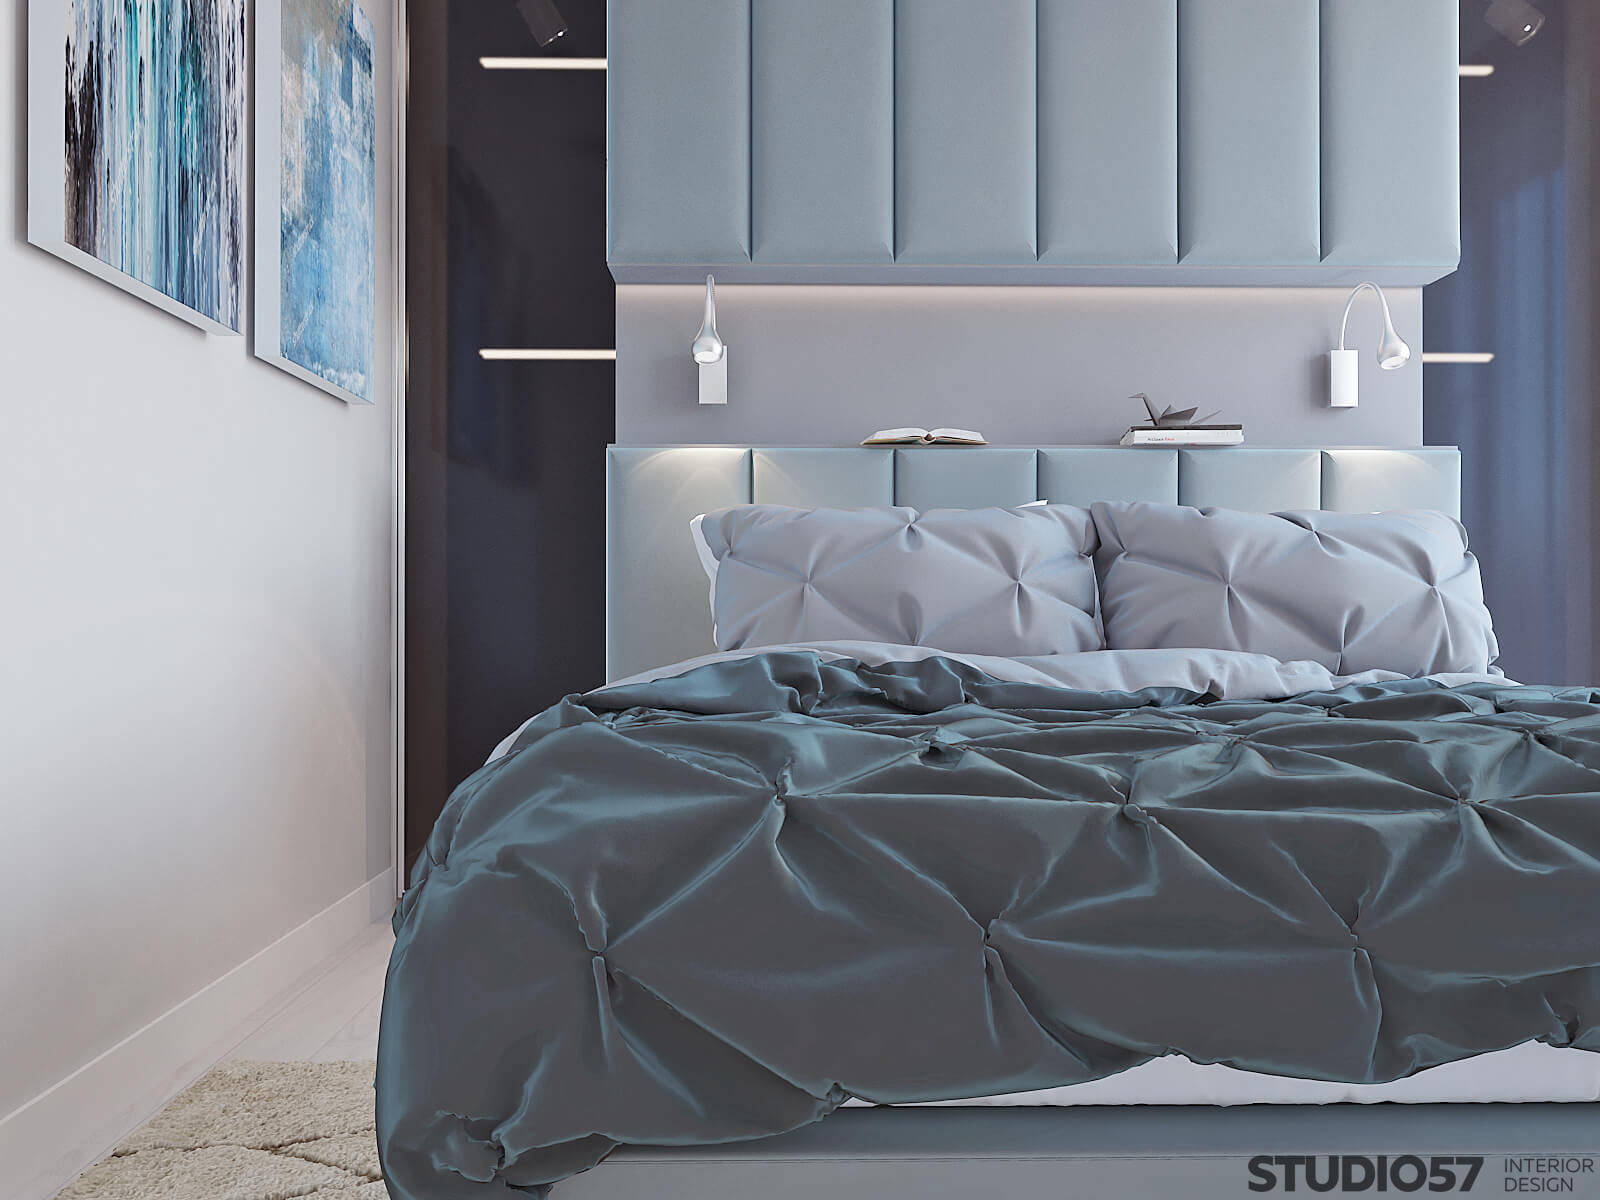 Photo of the bedroom in blue